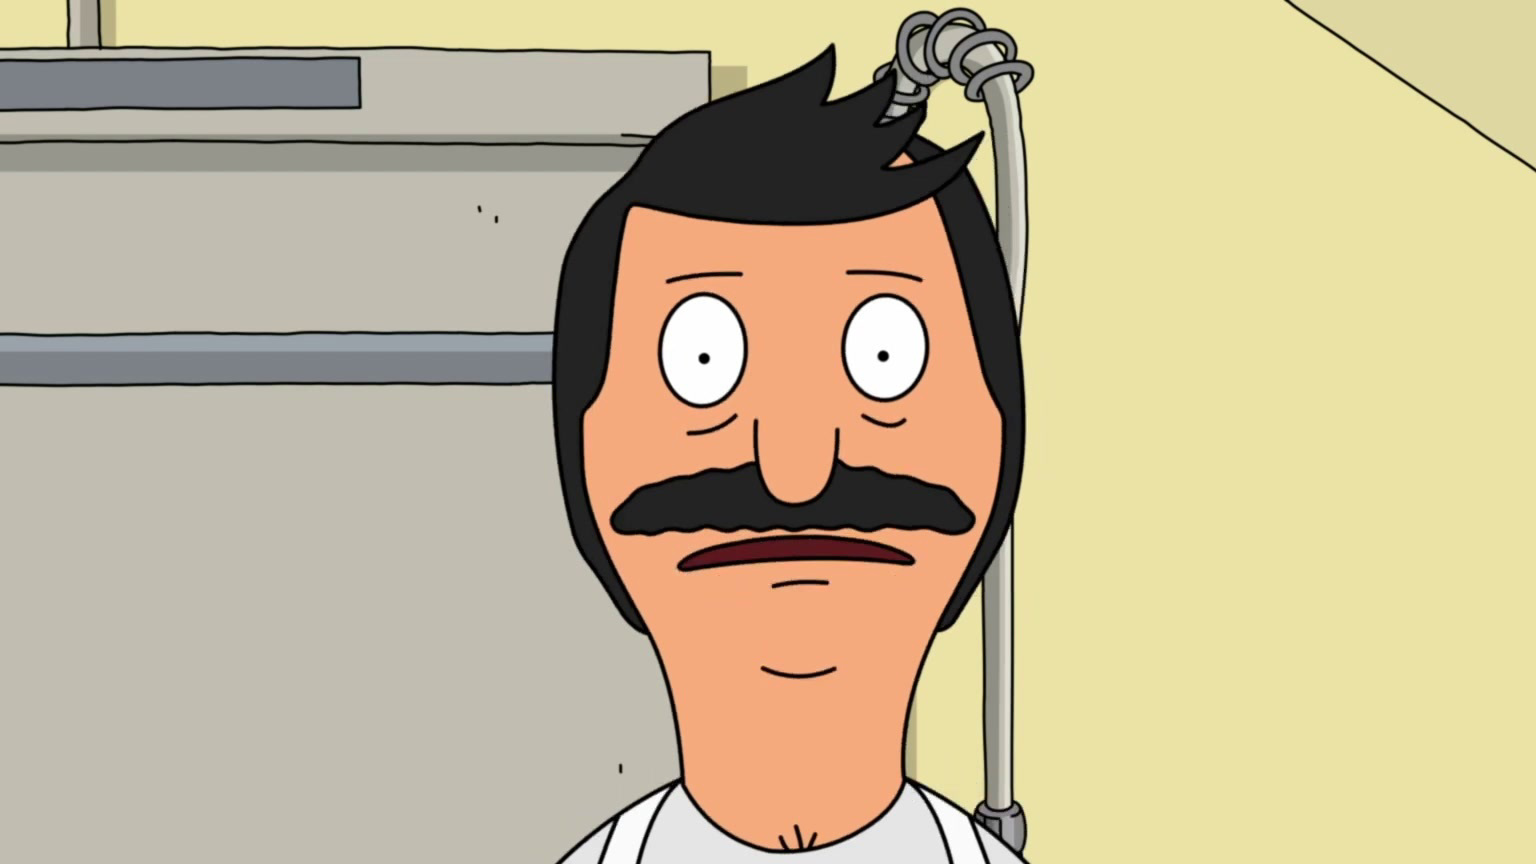 Bob's Burgers: Fast Time Capsules At Wagstaff School